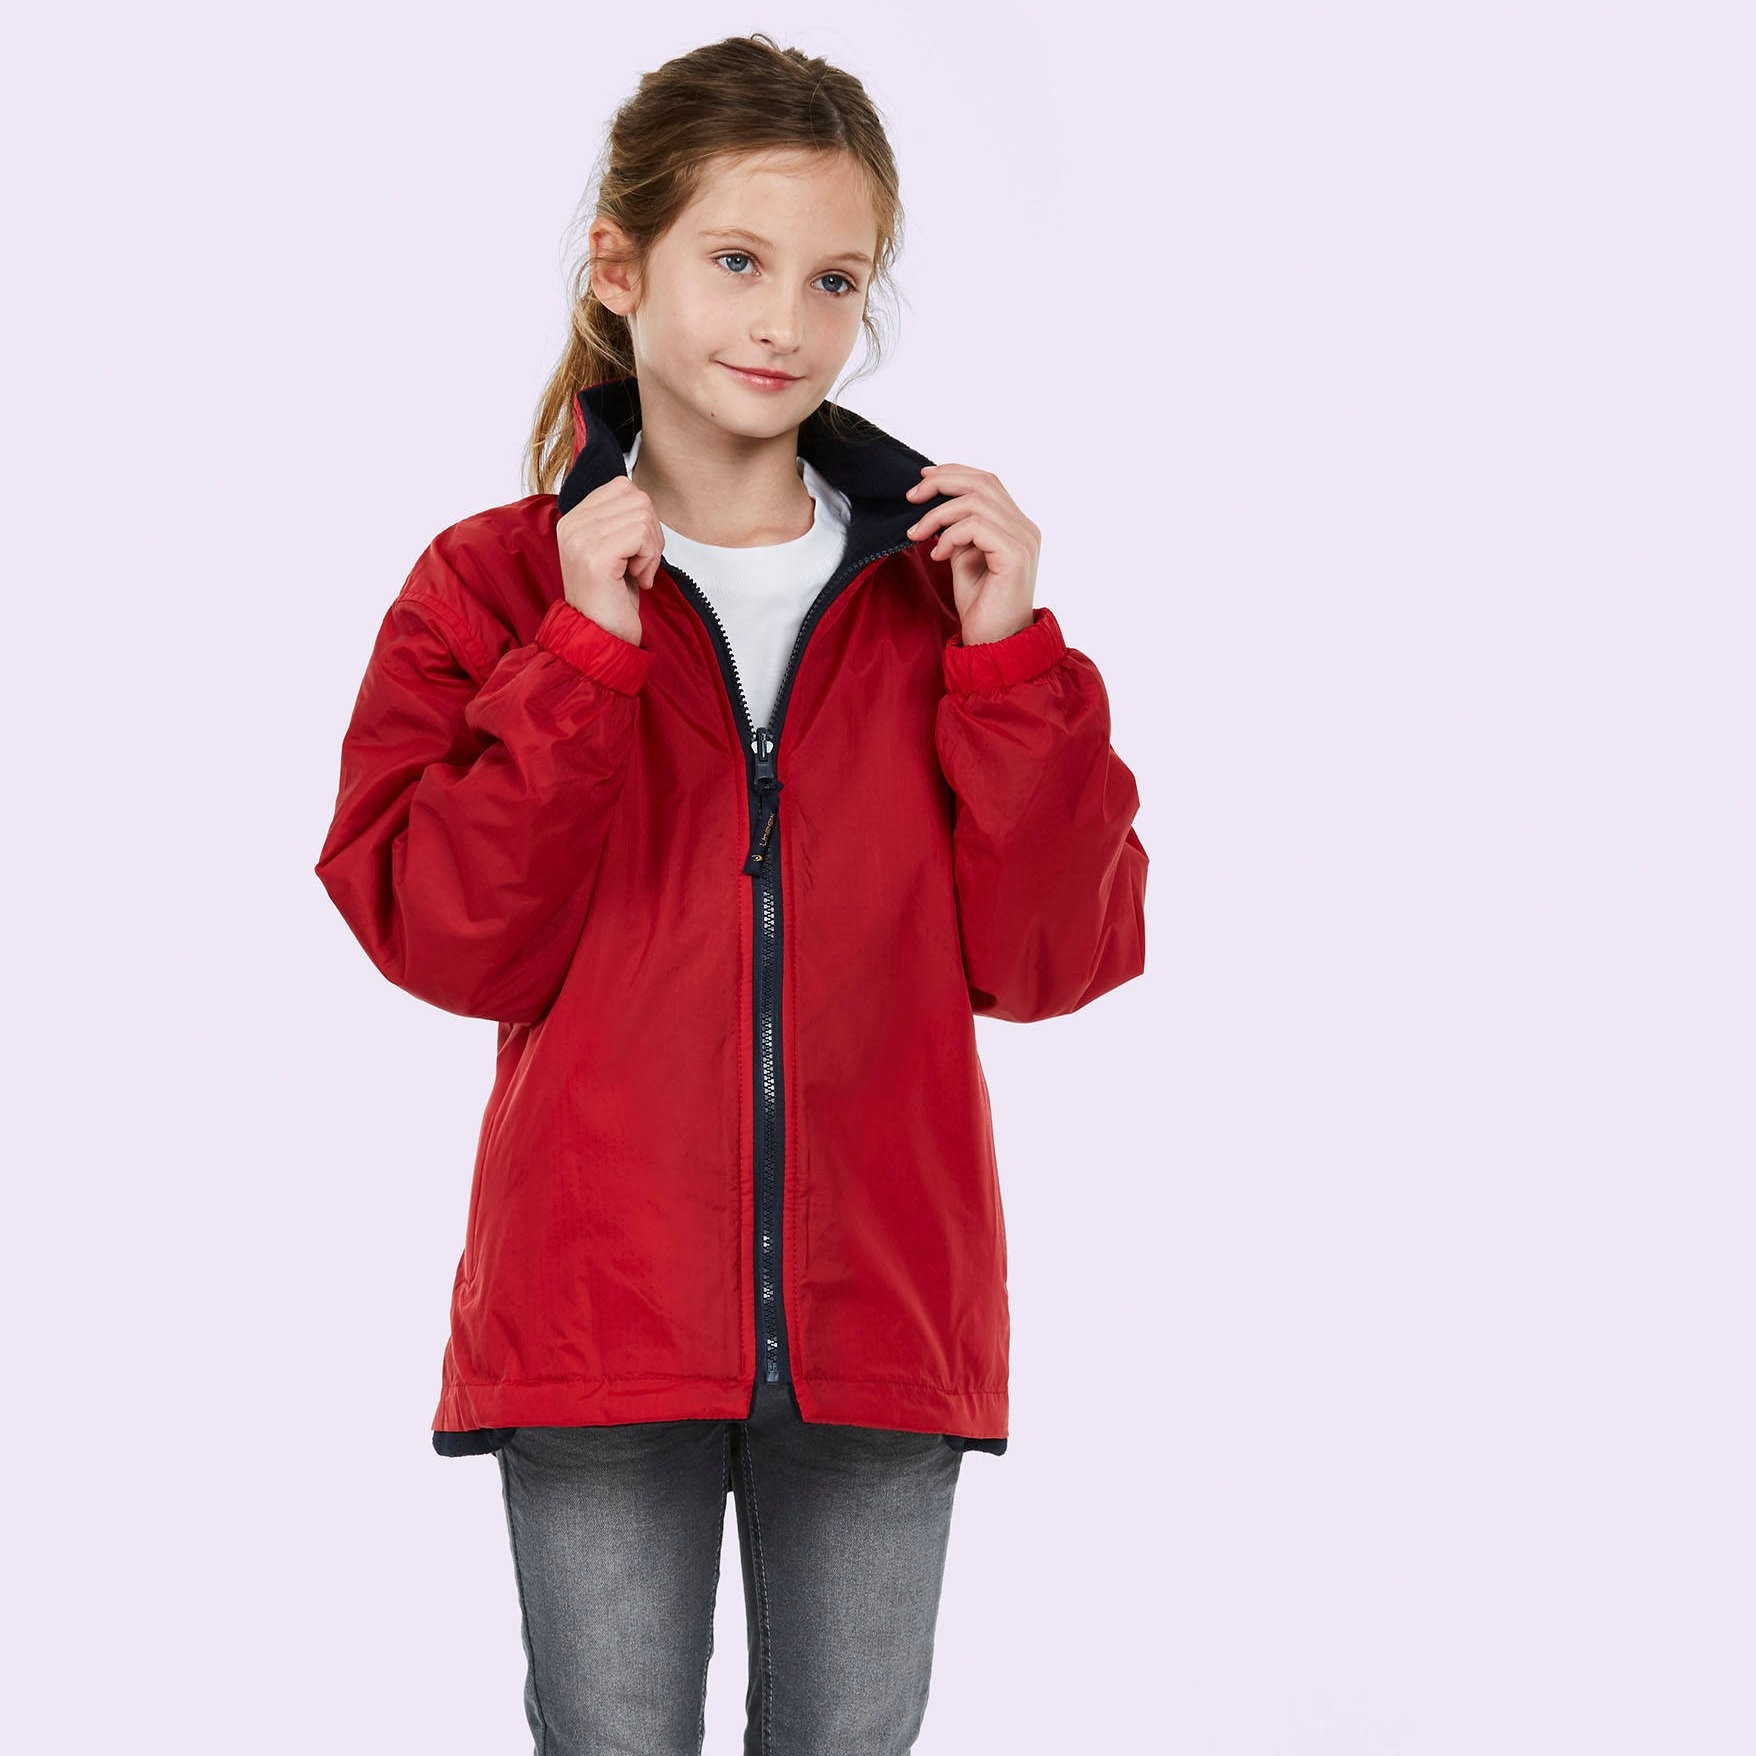 UC606 Childrens Reversible Fleece Jacket